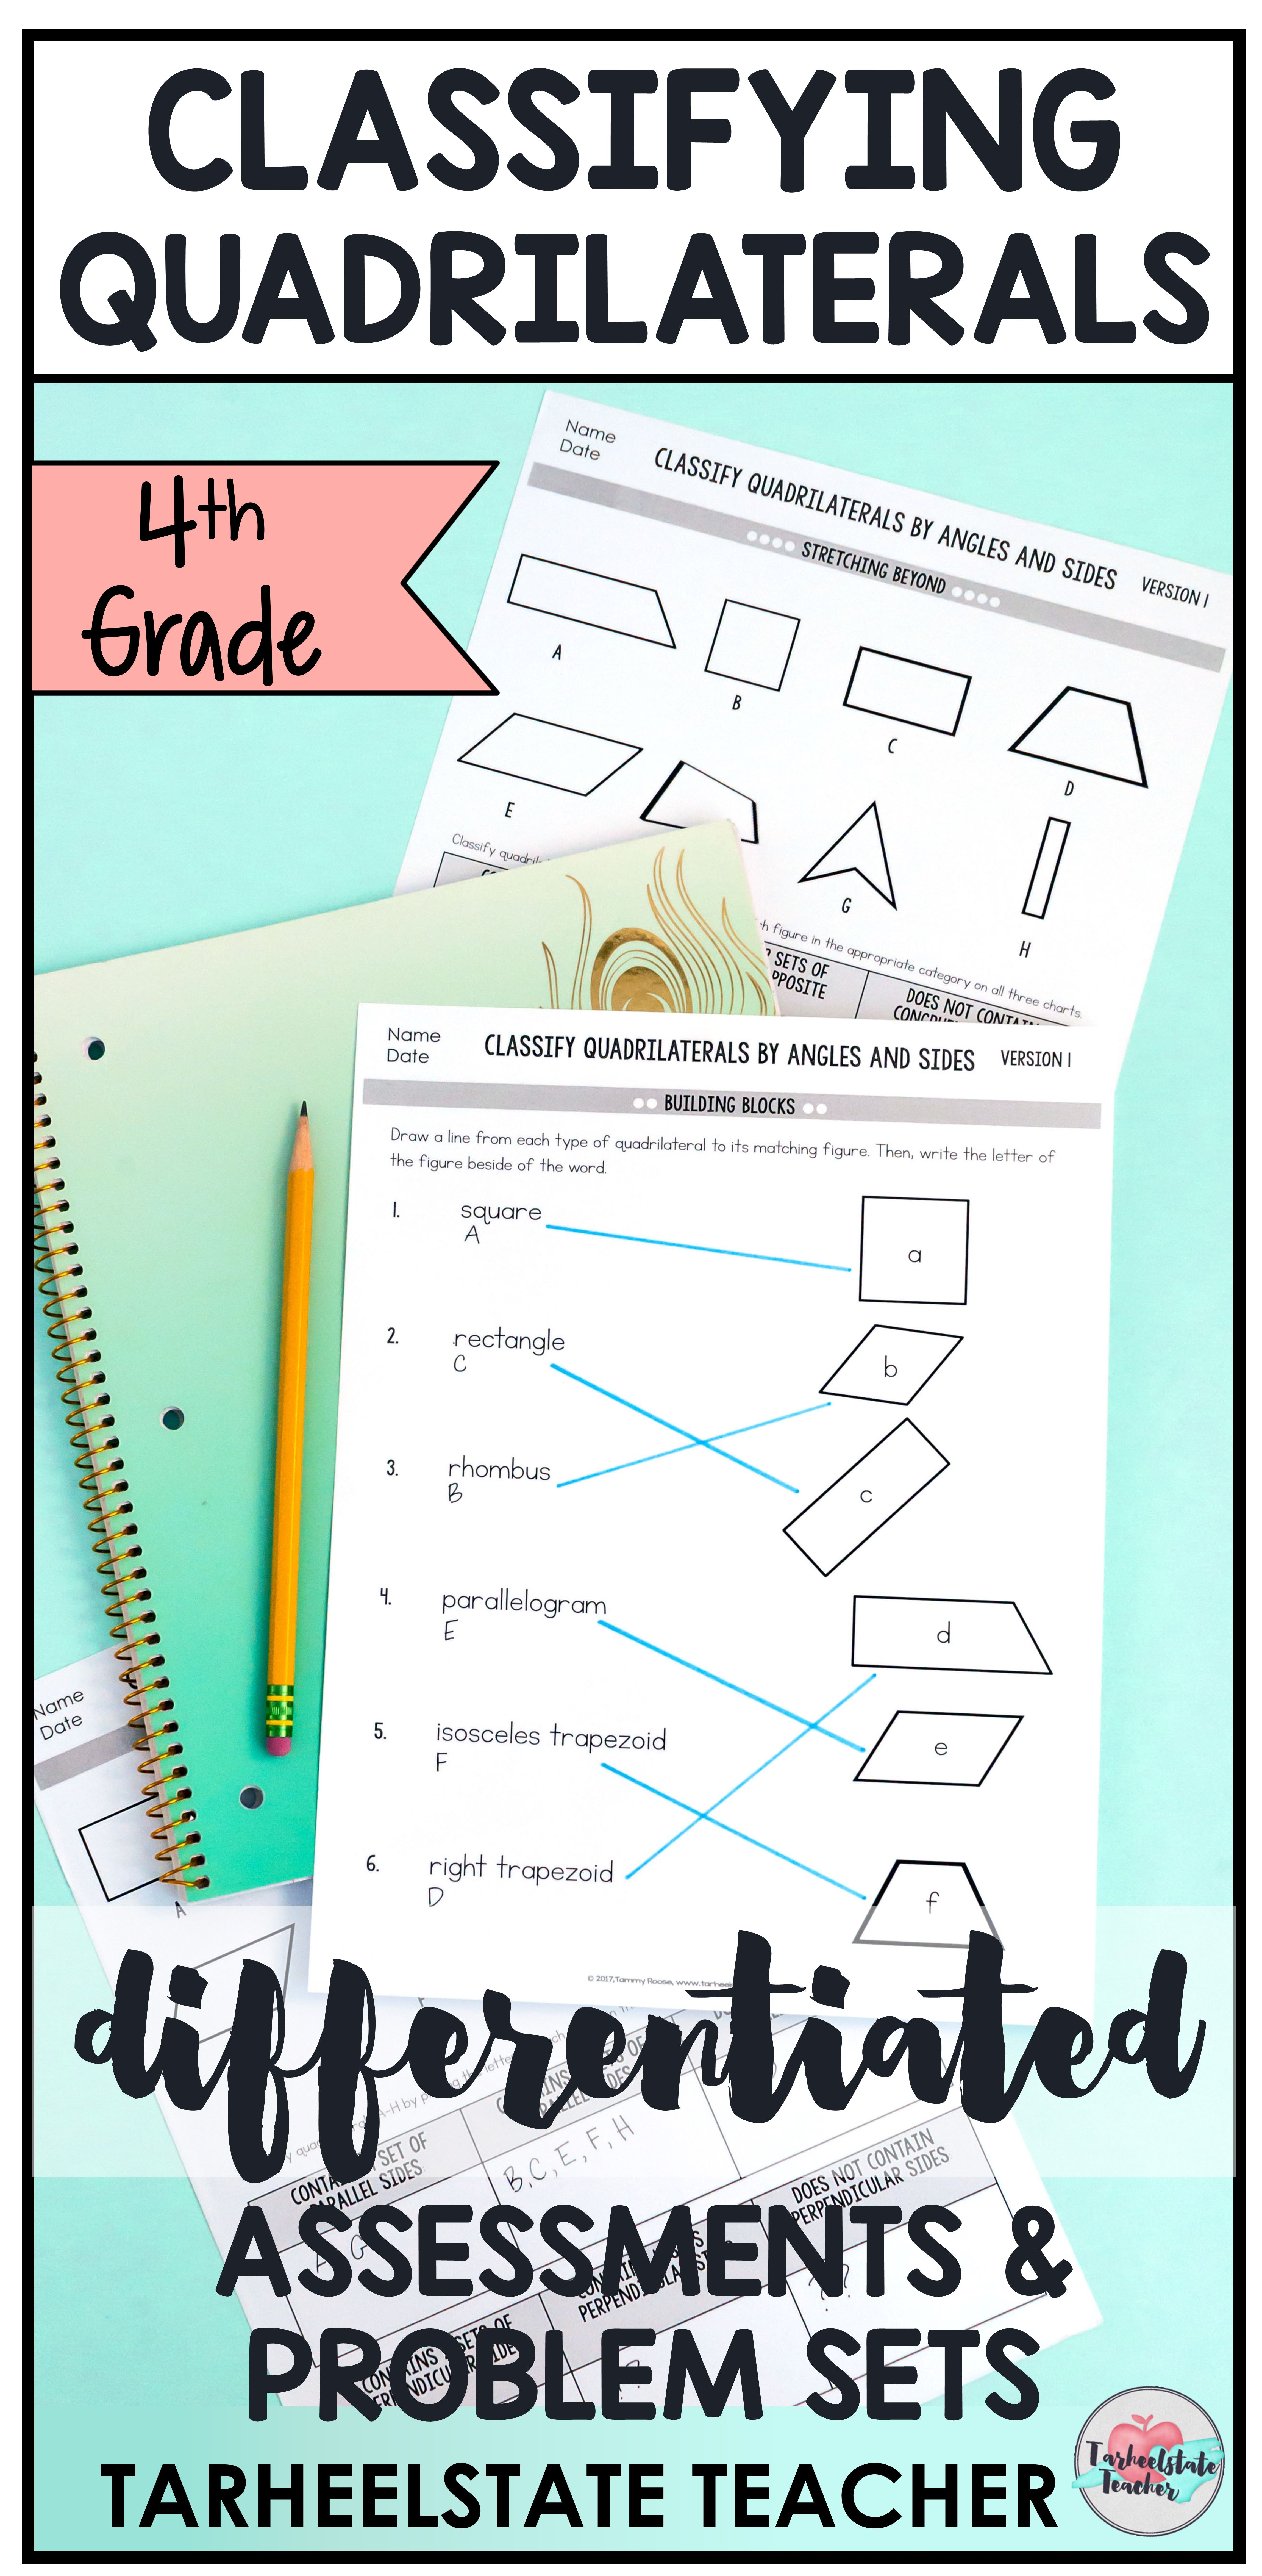 hight resolution of 4th Grade Geometry   Classifying Quadrilaterals Differentiated Worksheets    4th Grade Quadri…   Quadrilaterals